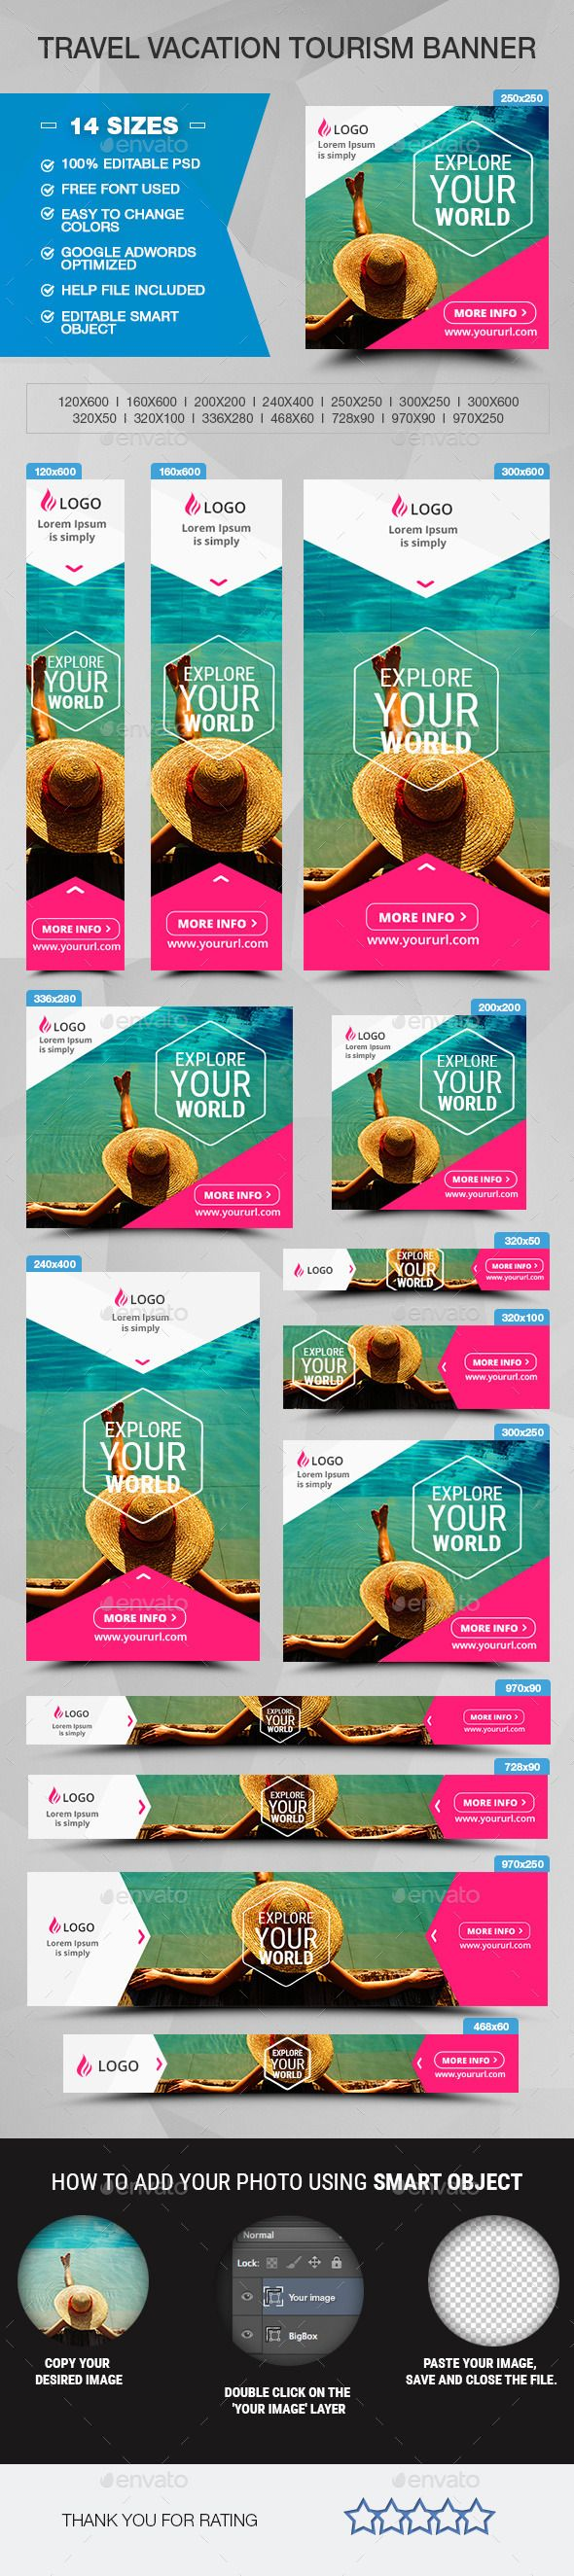 Travel Vacation Tourism Banner Template design ads